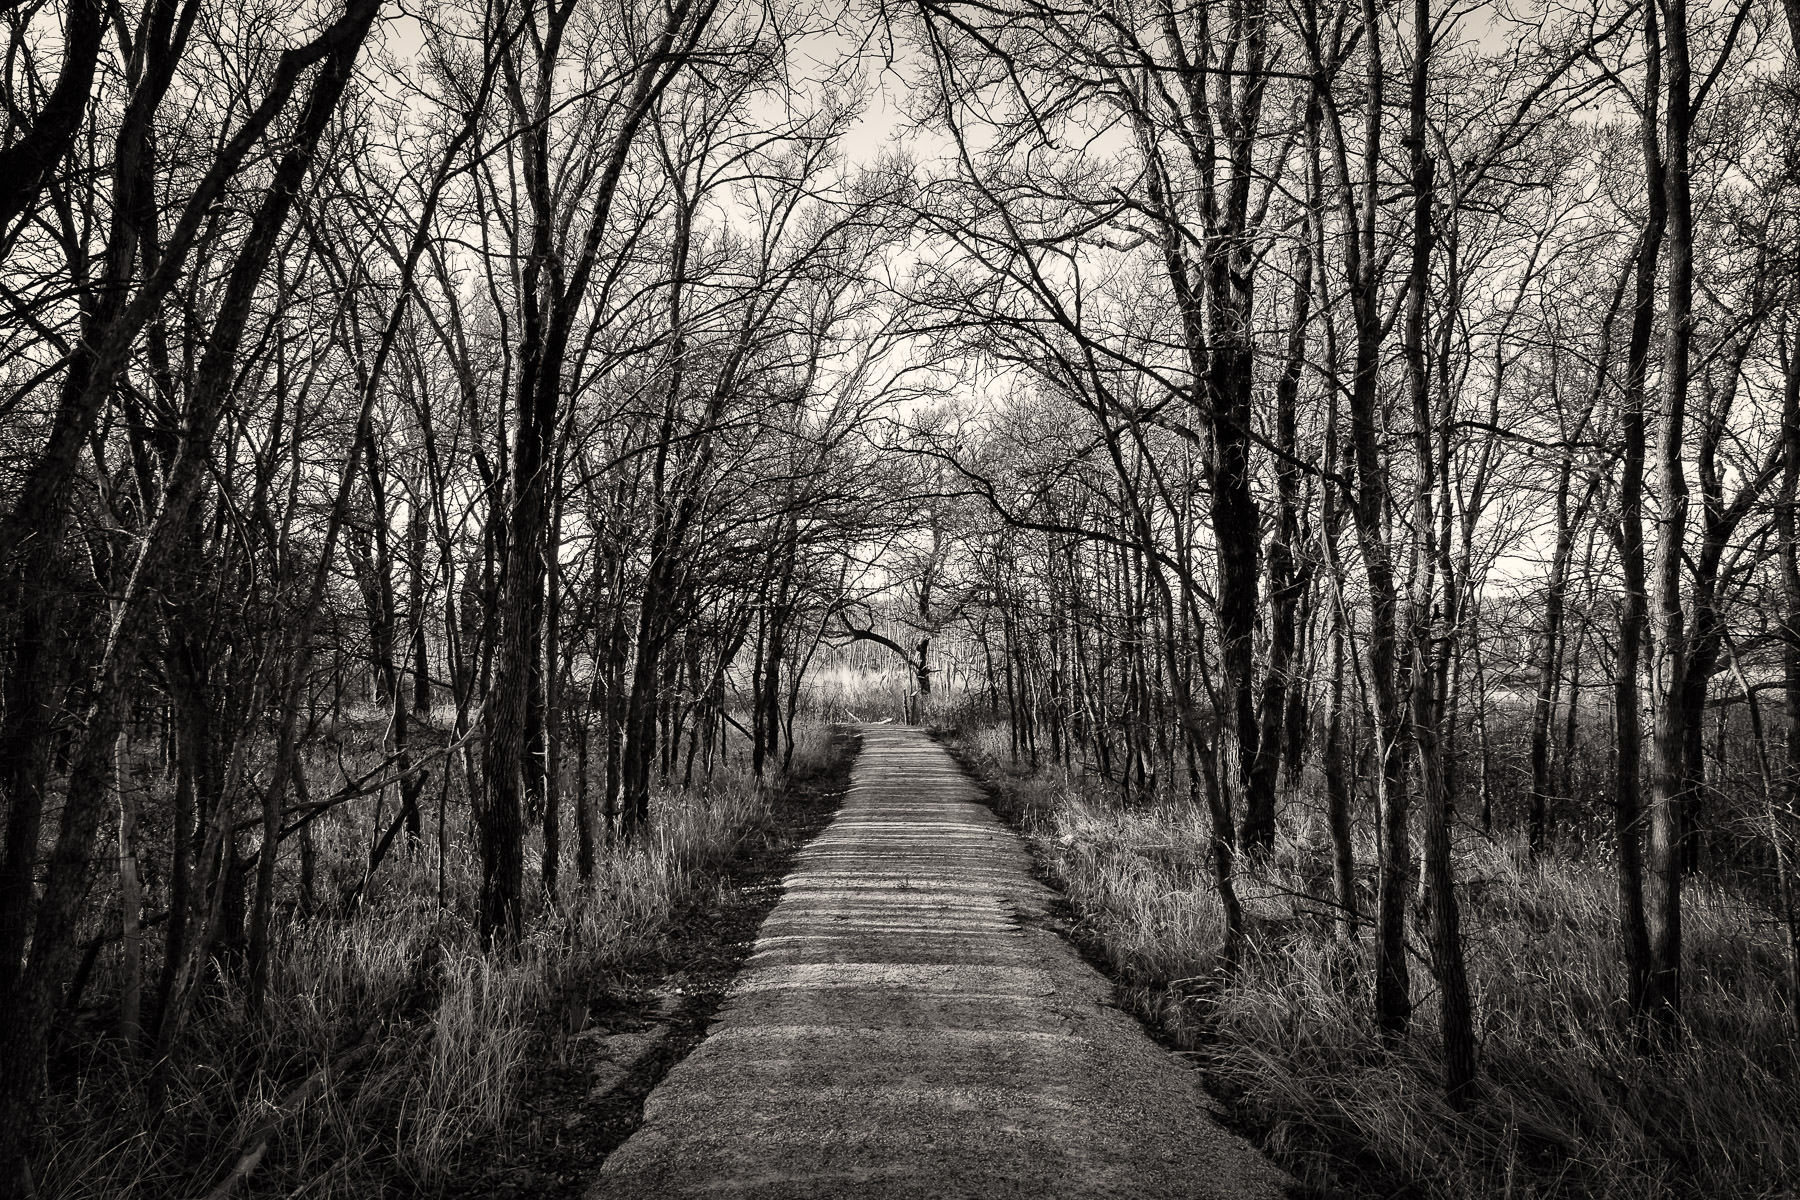 A path winds through the forest at Texas' Hagerman National Wildlife Refuge.